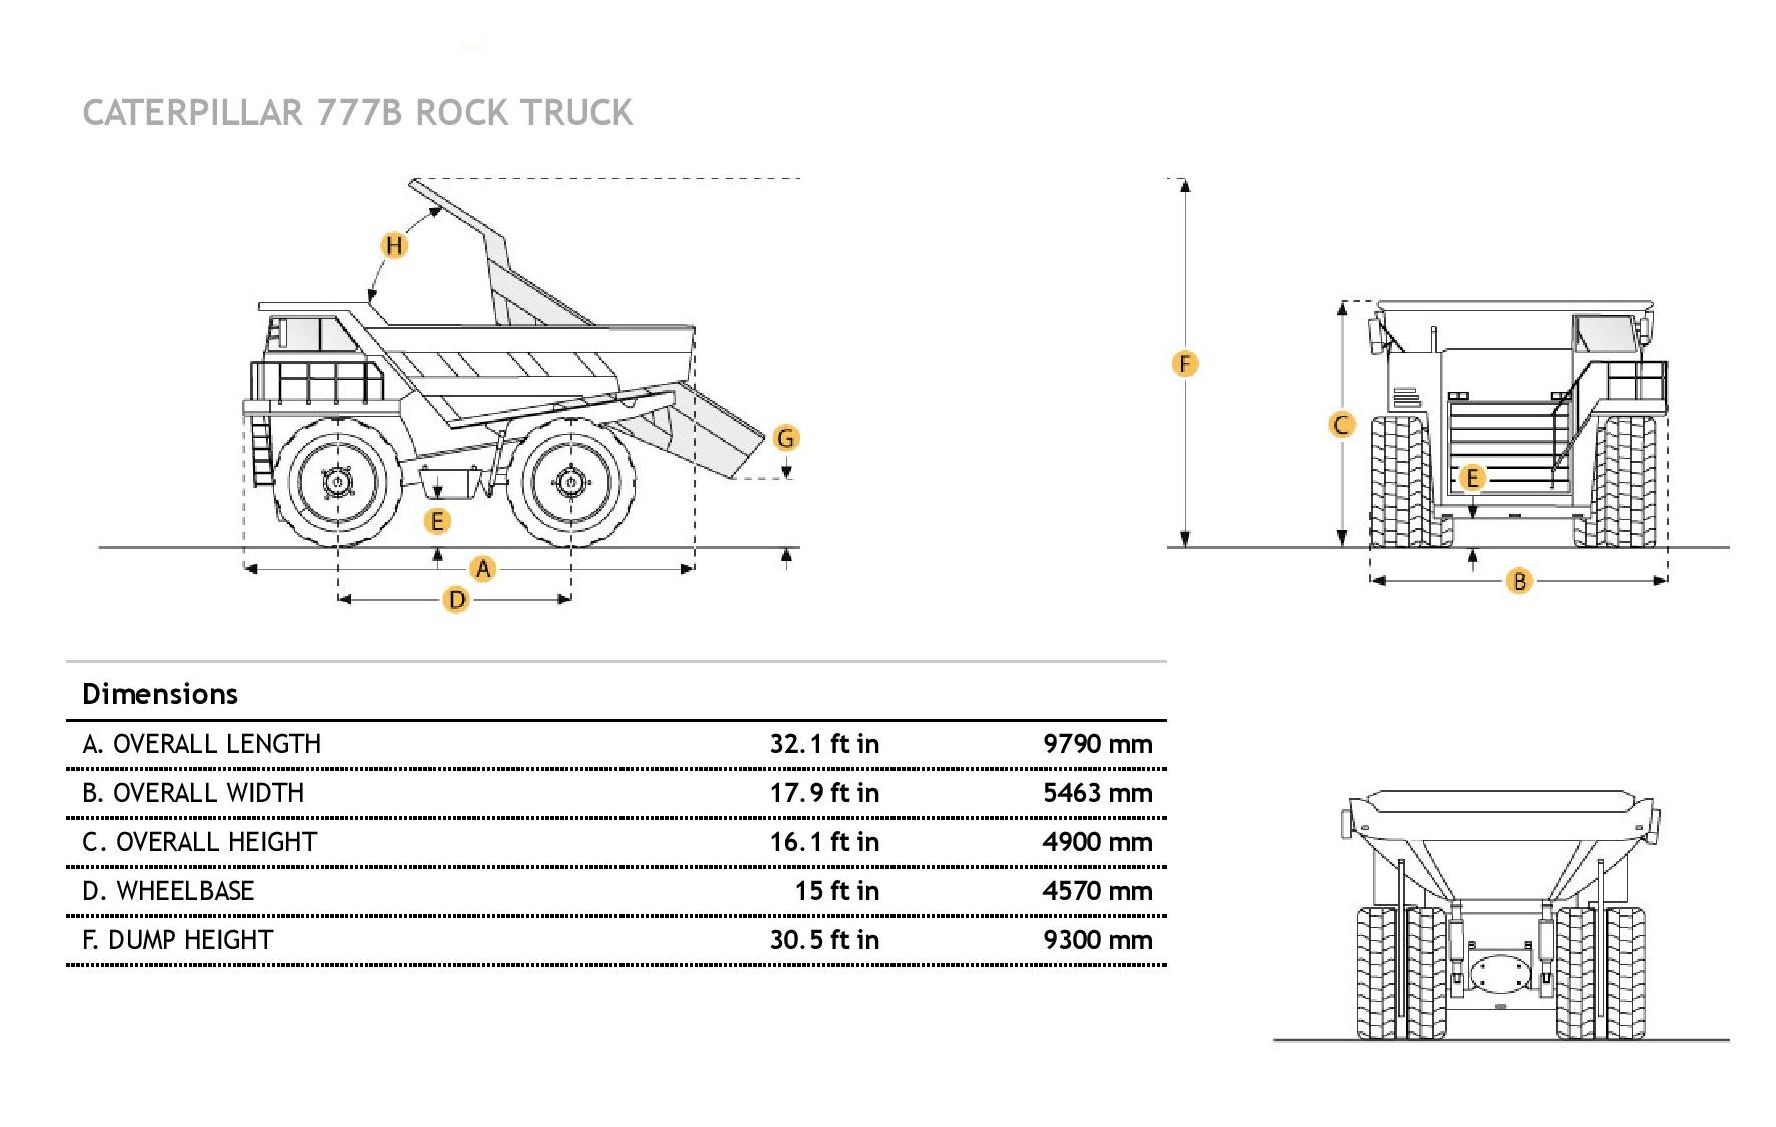 Cat 3126 Engine Diagram - Wiring Diagrams Schematics  Injector Wiring Harness on 2001 honda accord injector harness, injector sensor, cummins m11 wire harness, injector transformer, injector pump, 3126 injector wire harness, ignition coil harness,